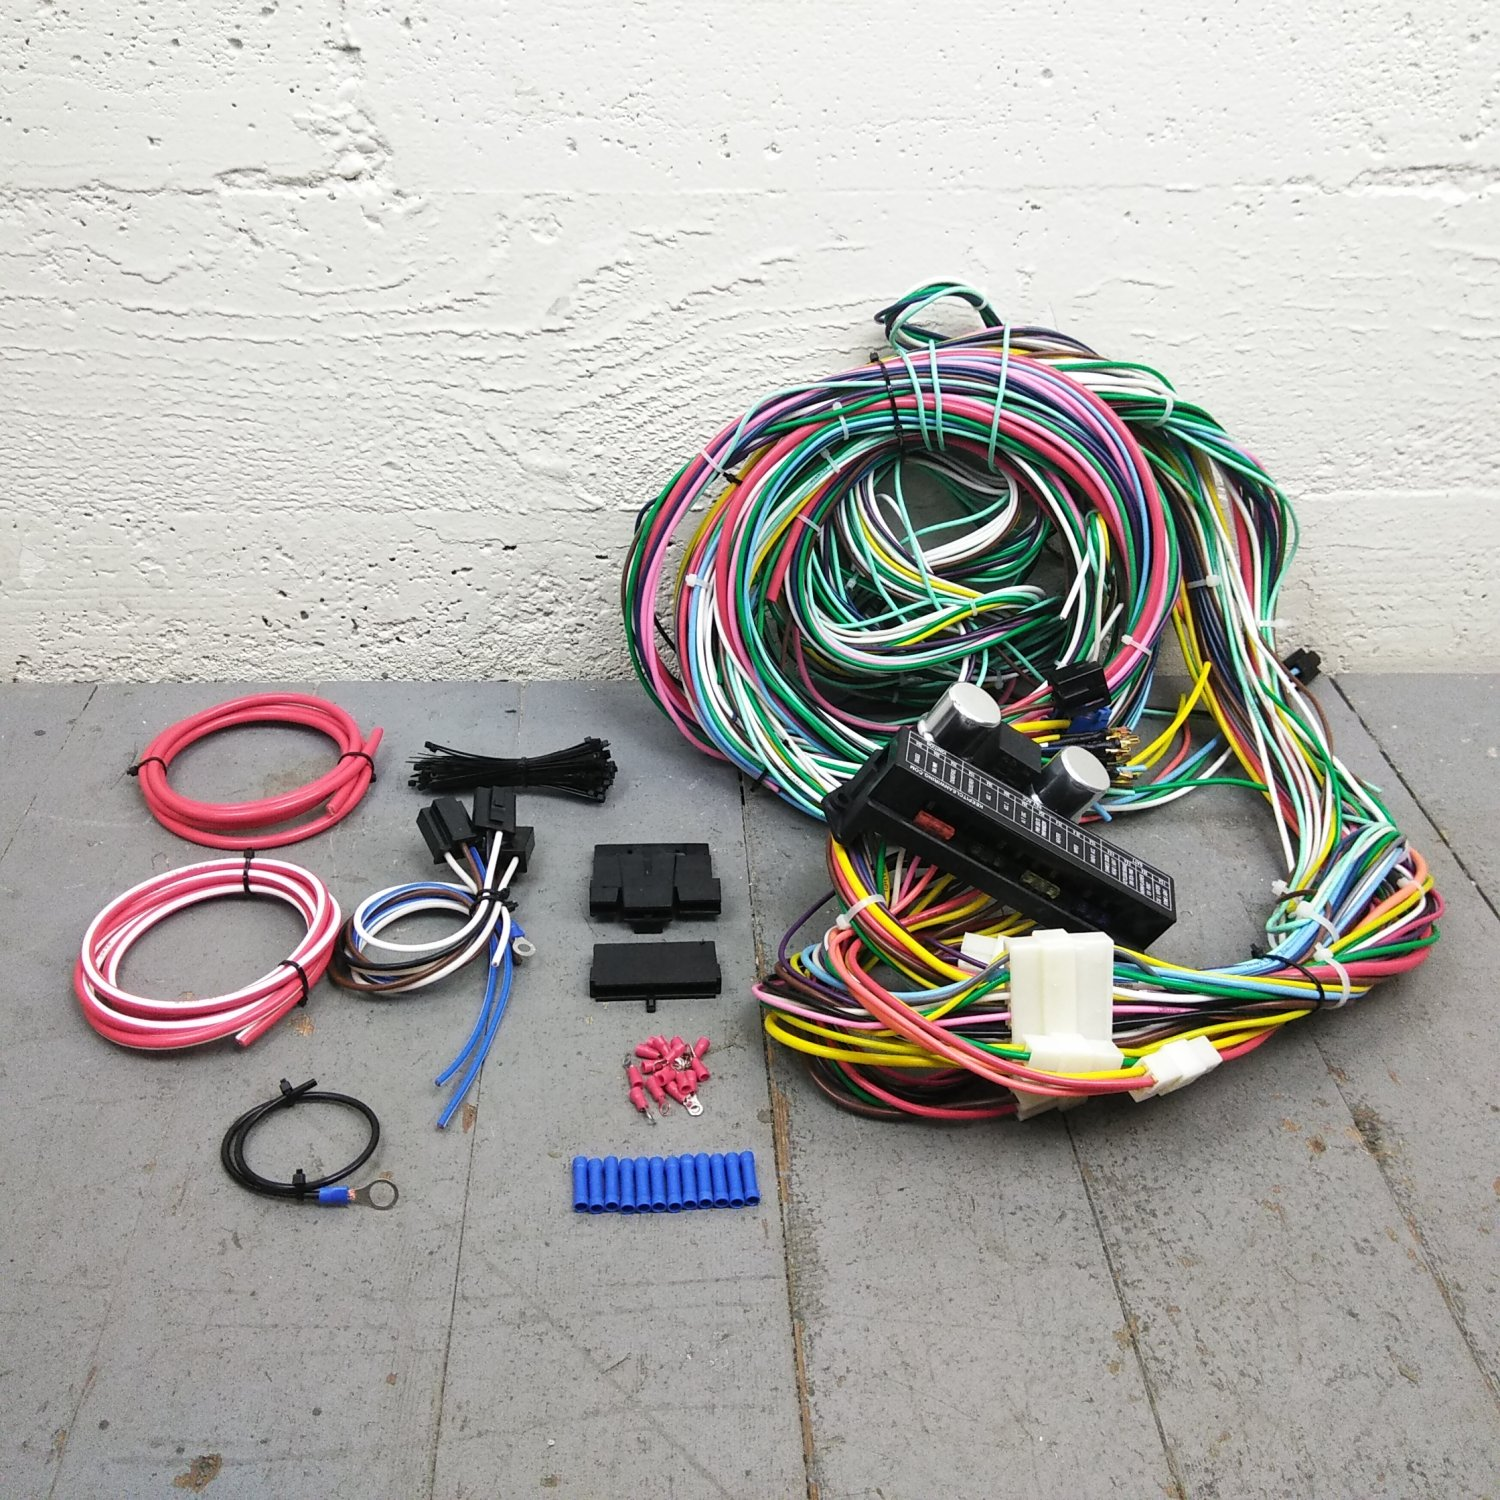 1964 - 1967 Chevrolet El Camino Wire Harness Upgrade Kit fits painless  complete. Bar_Product_Description_C